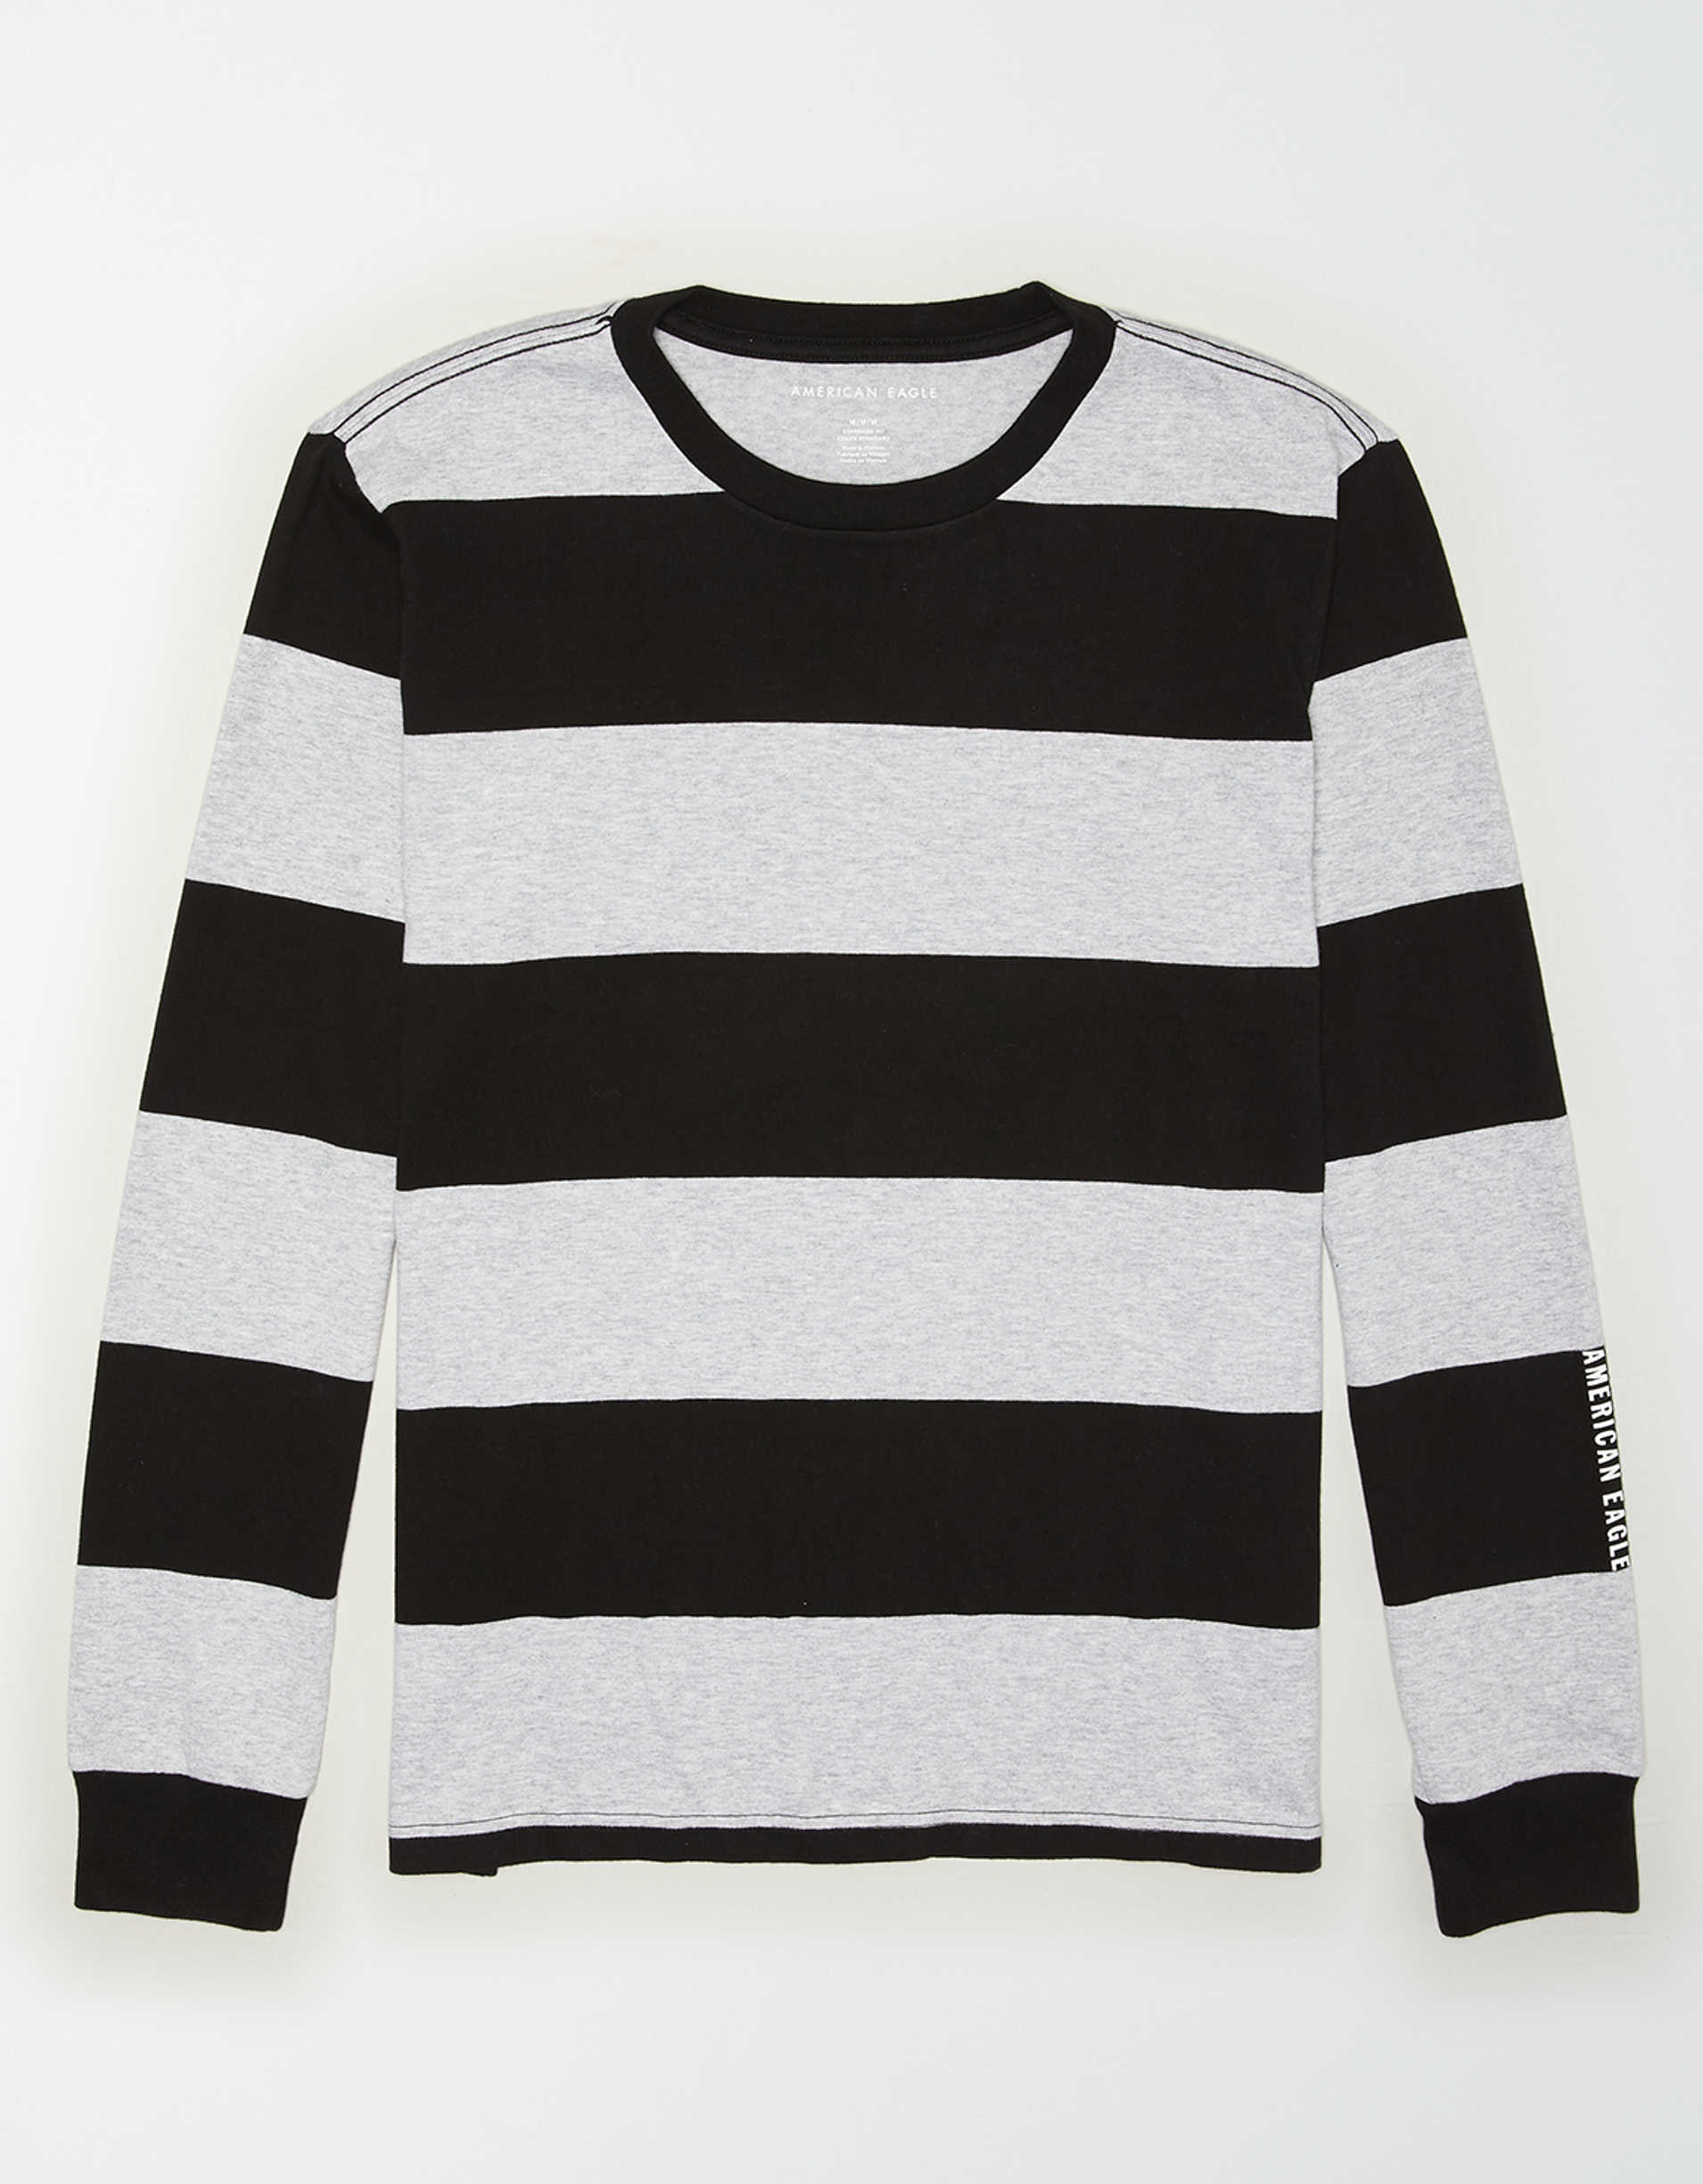 AE Long Sleeve Striped T-Shirt